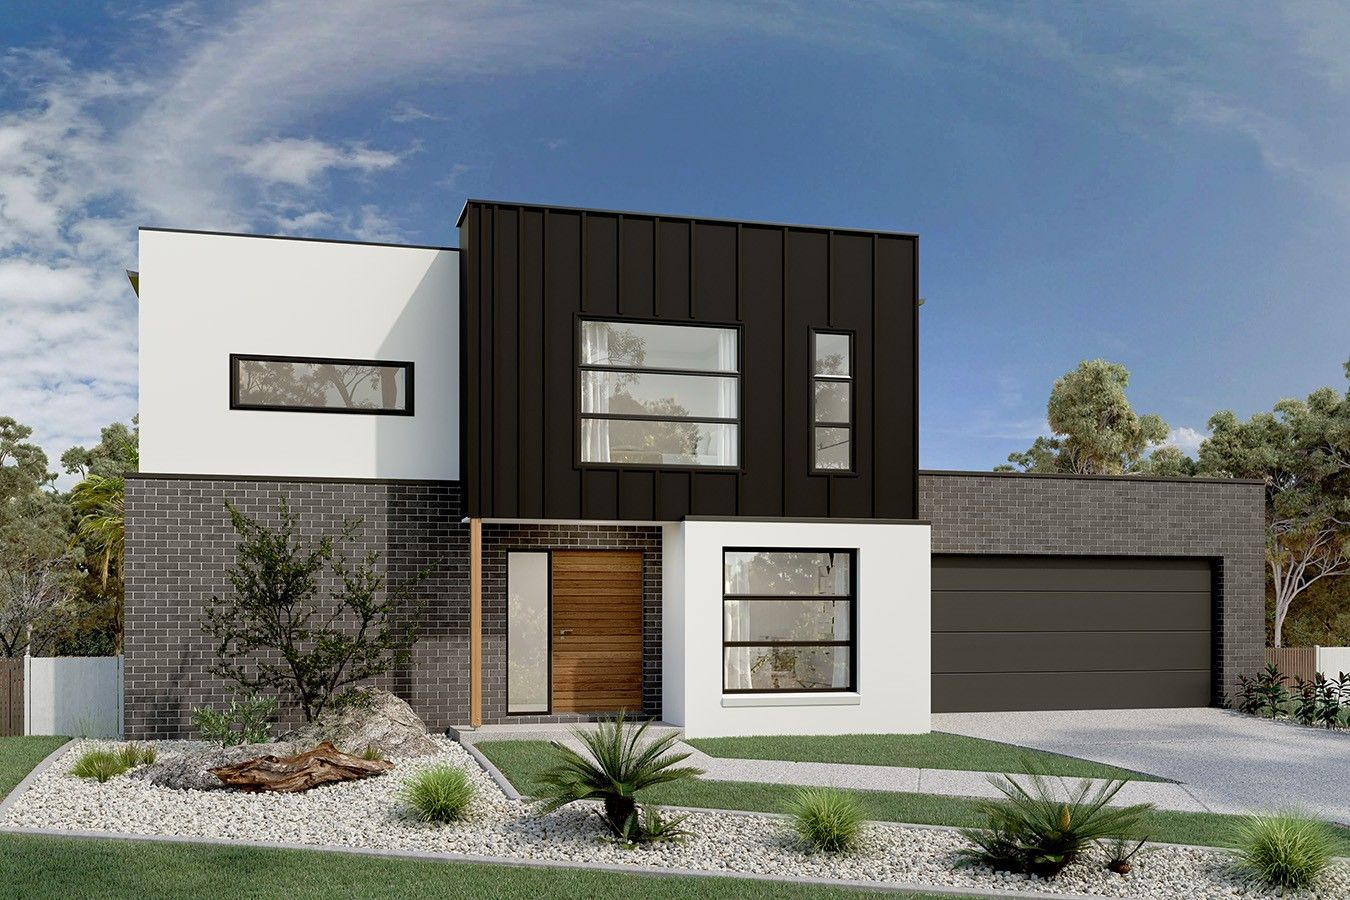 Lot 2, 26 Queen Road, Pearcedale VIC 3912, Image 0